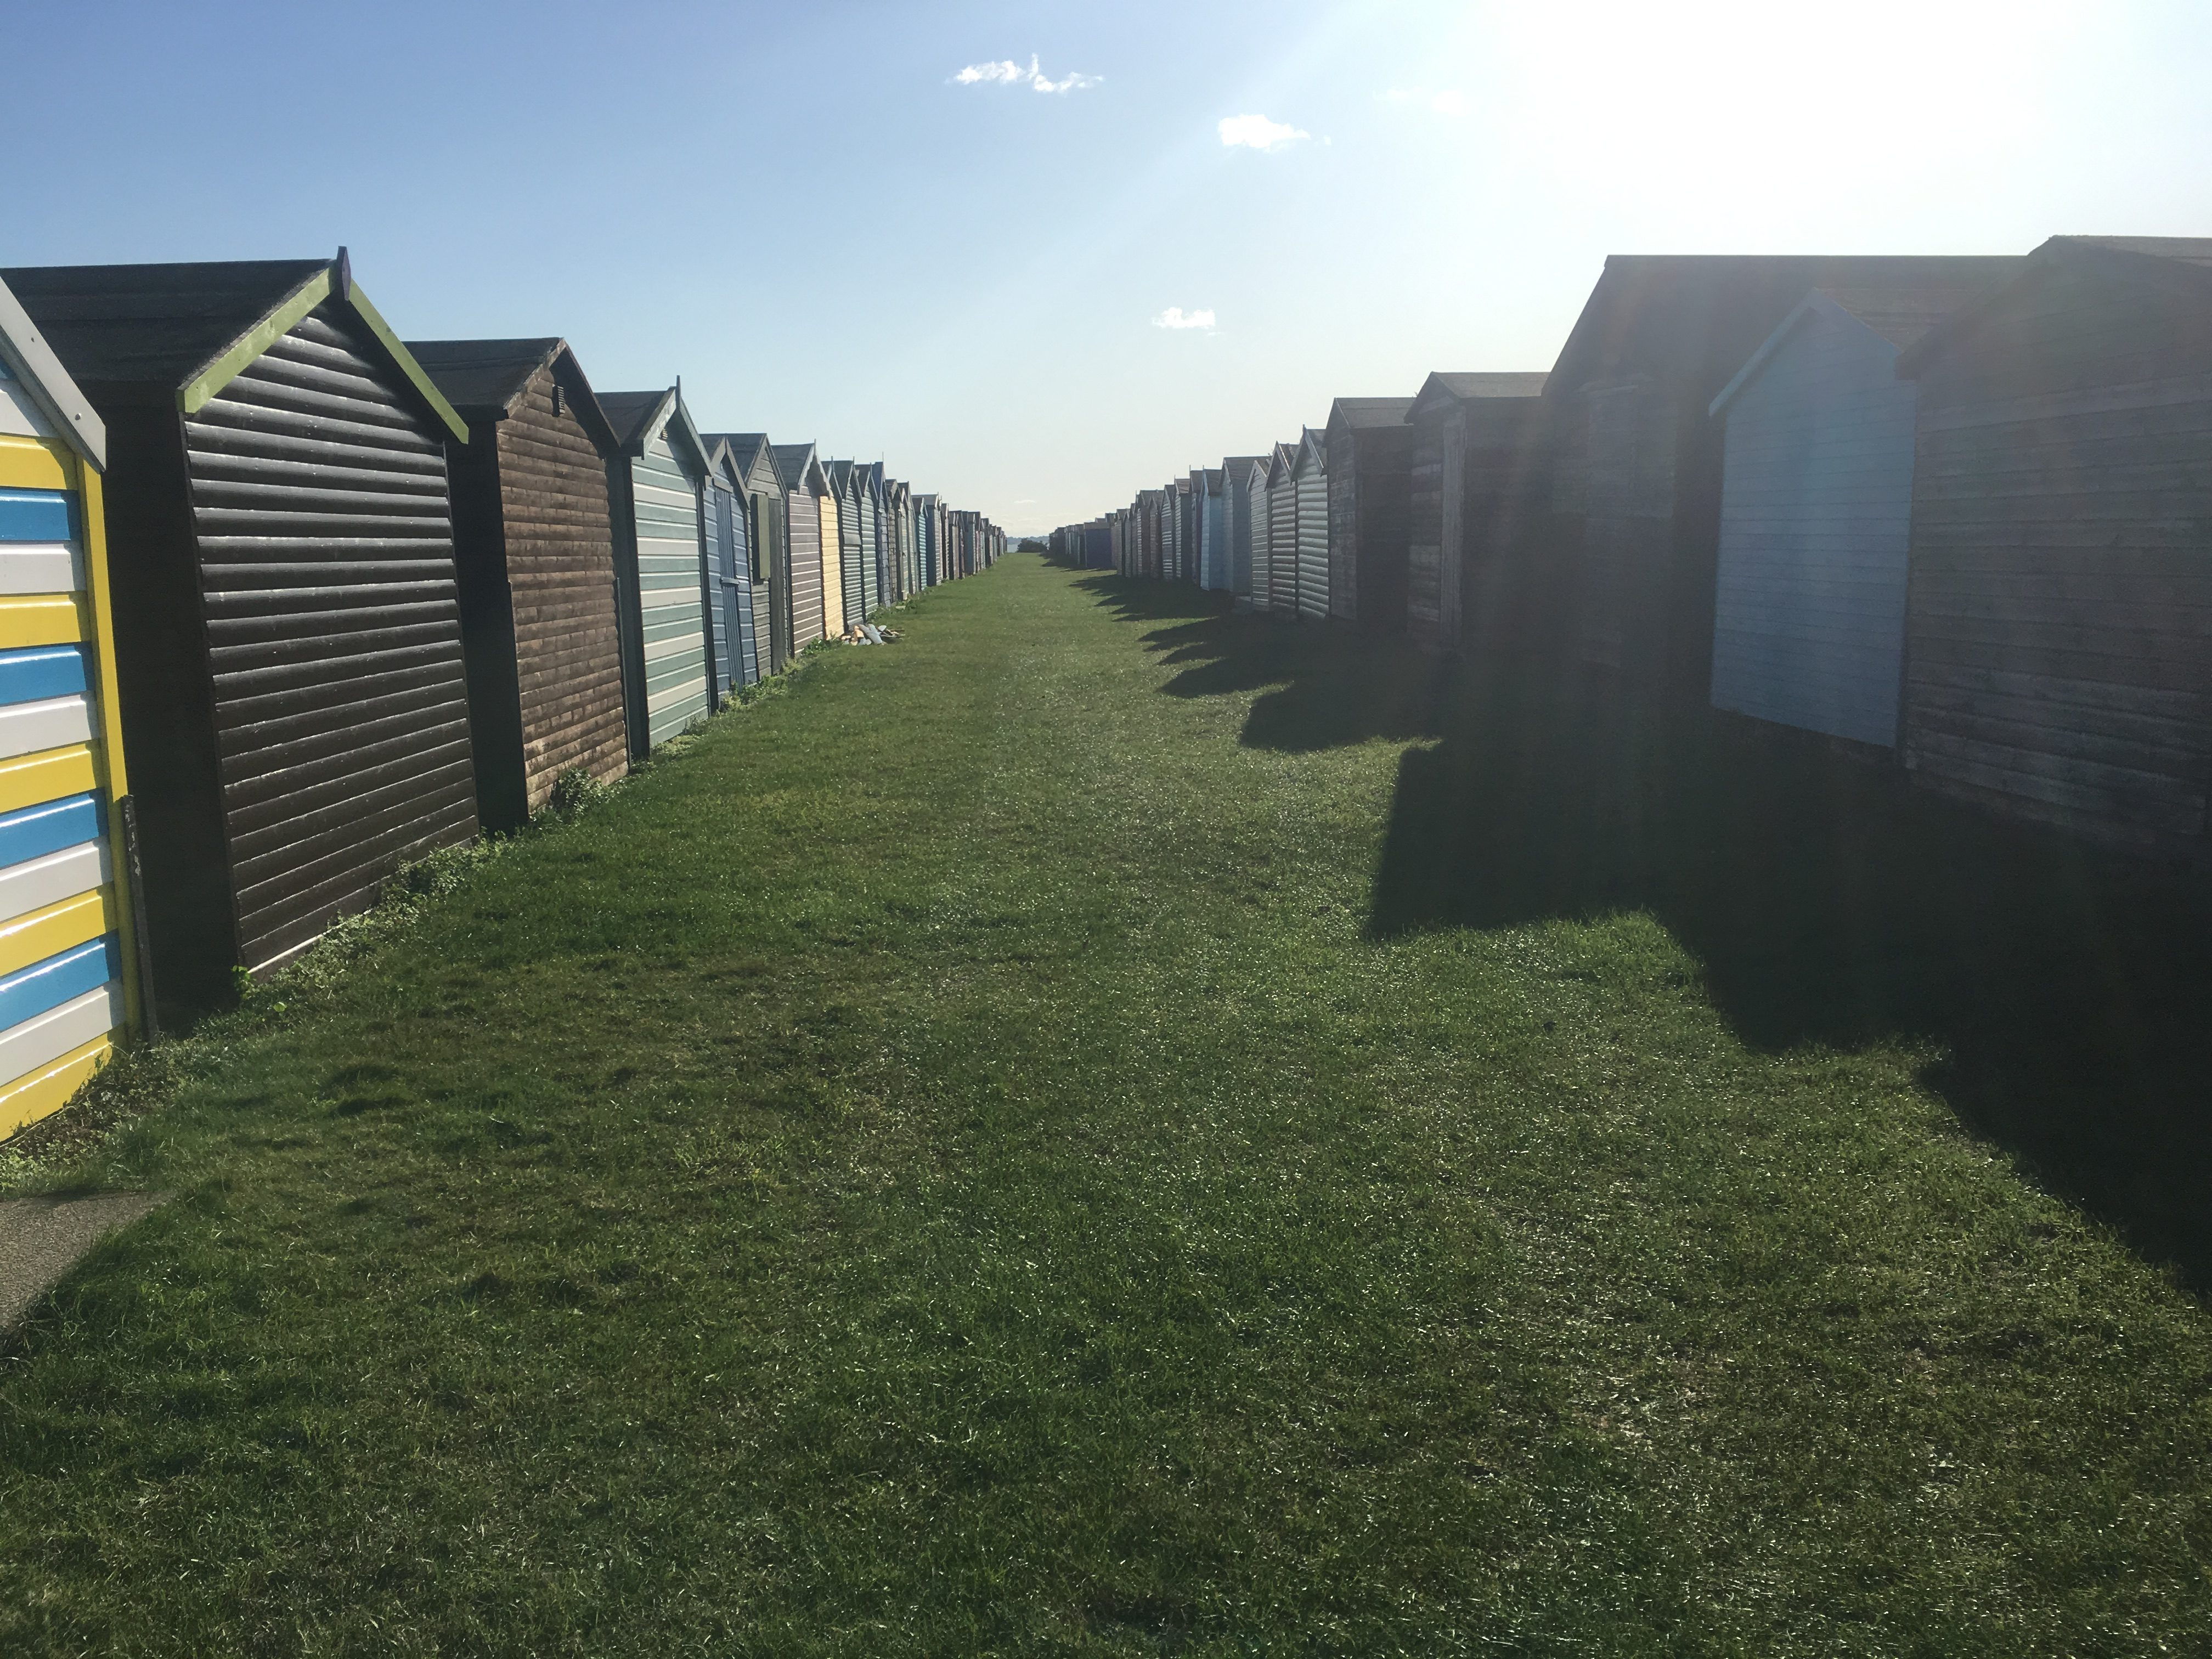 Harwich takes their beach boxes seriously